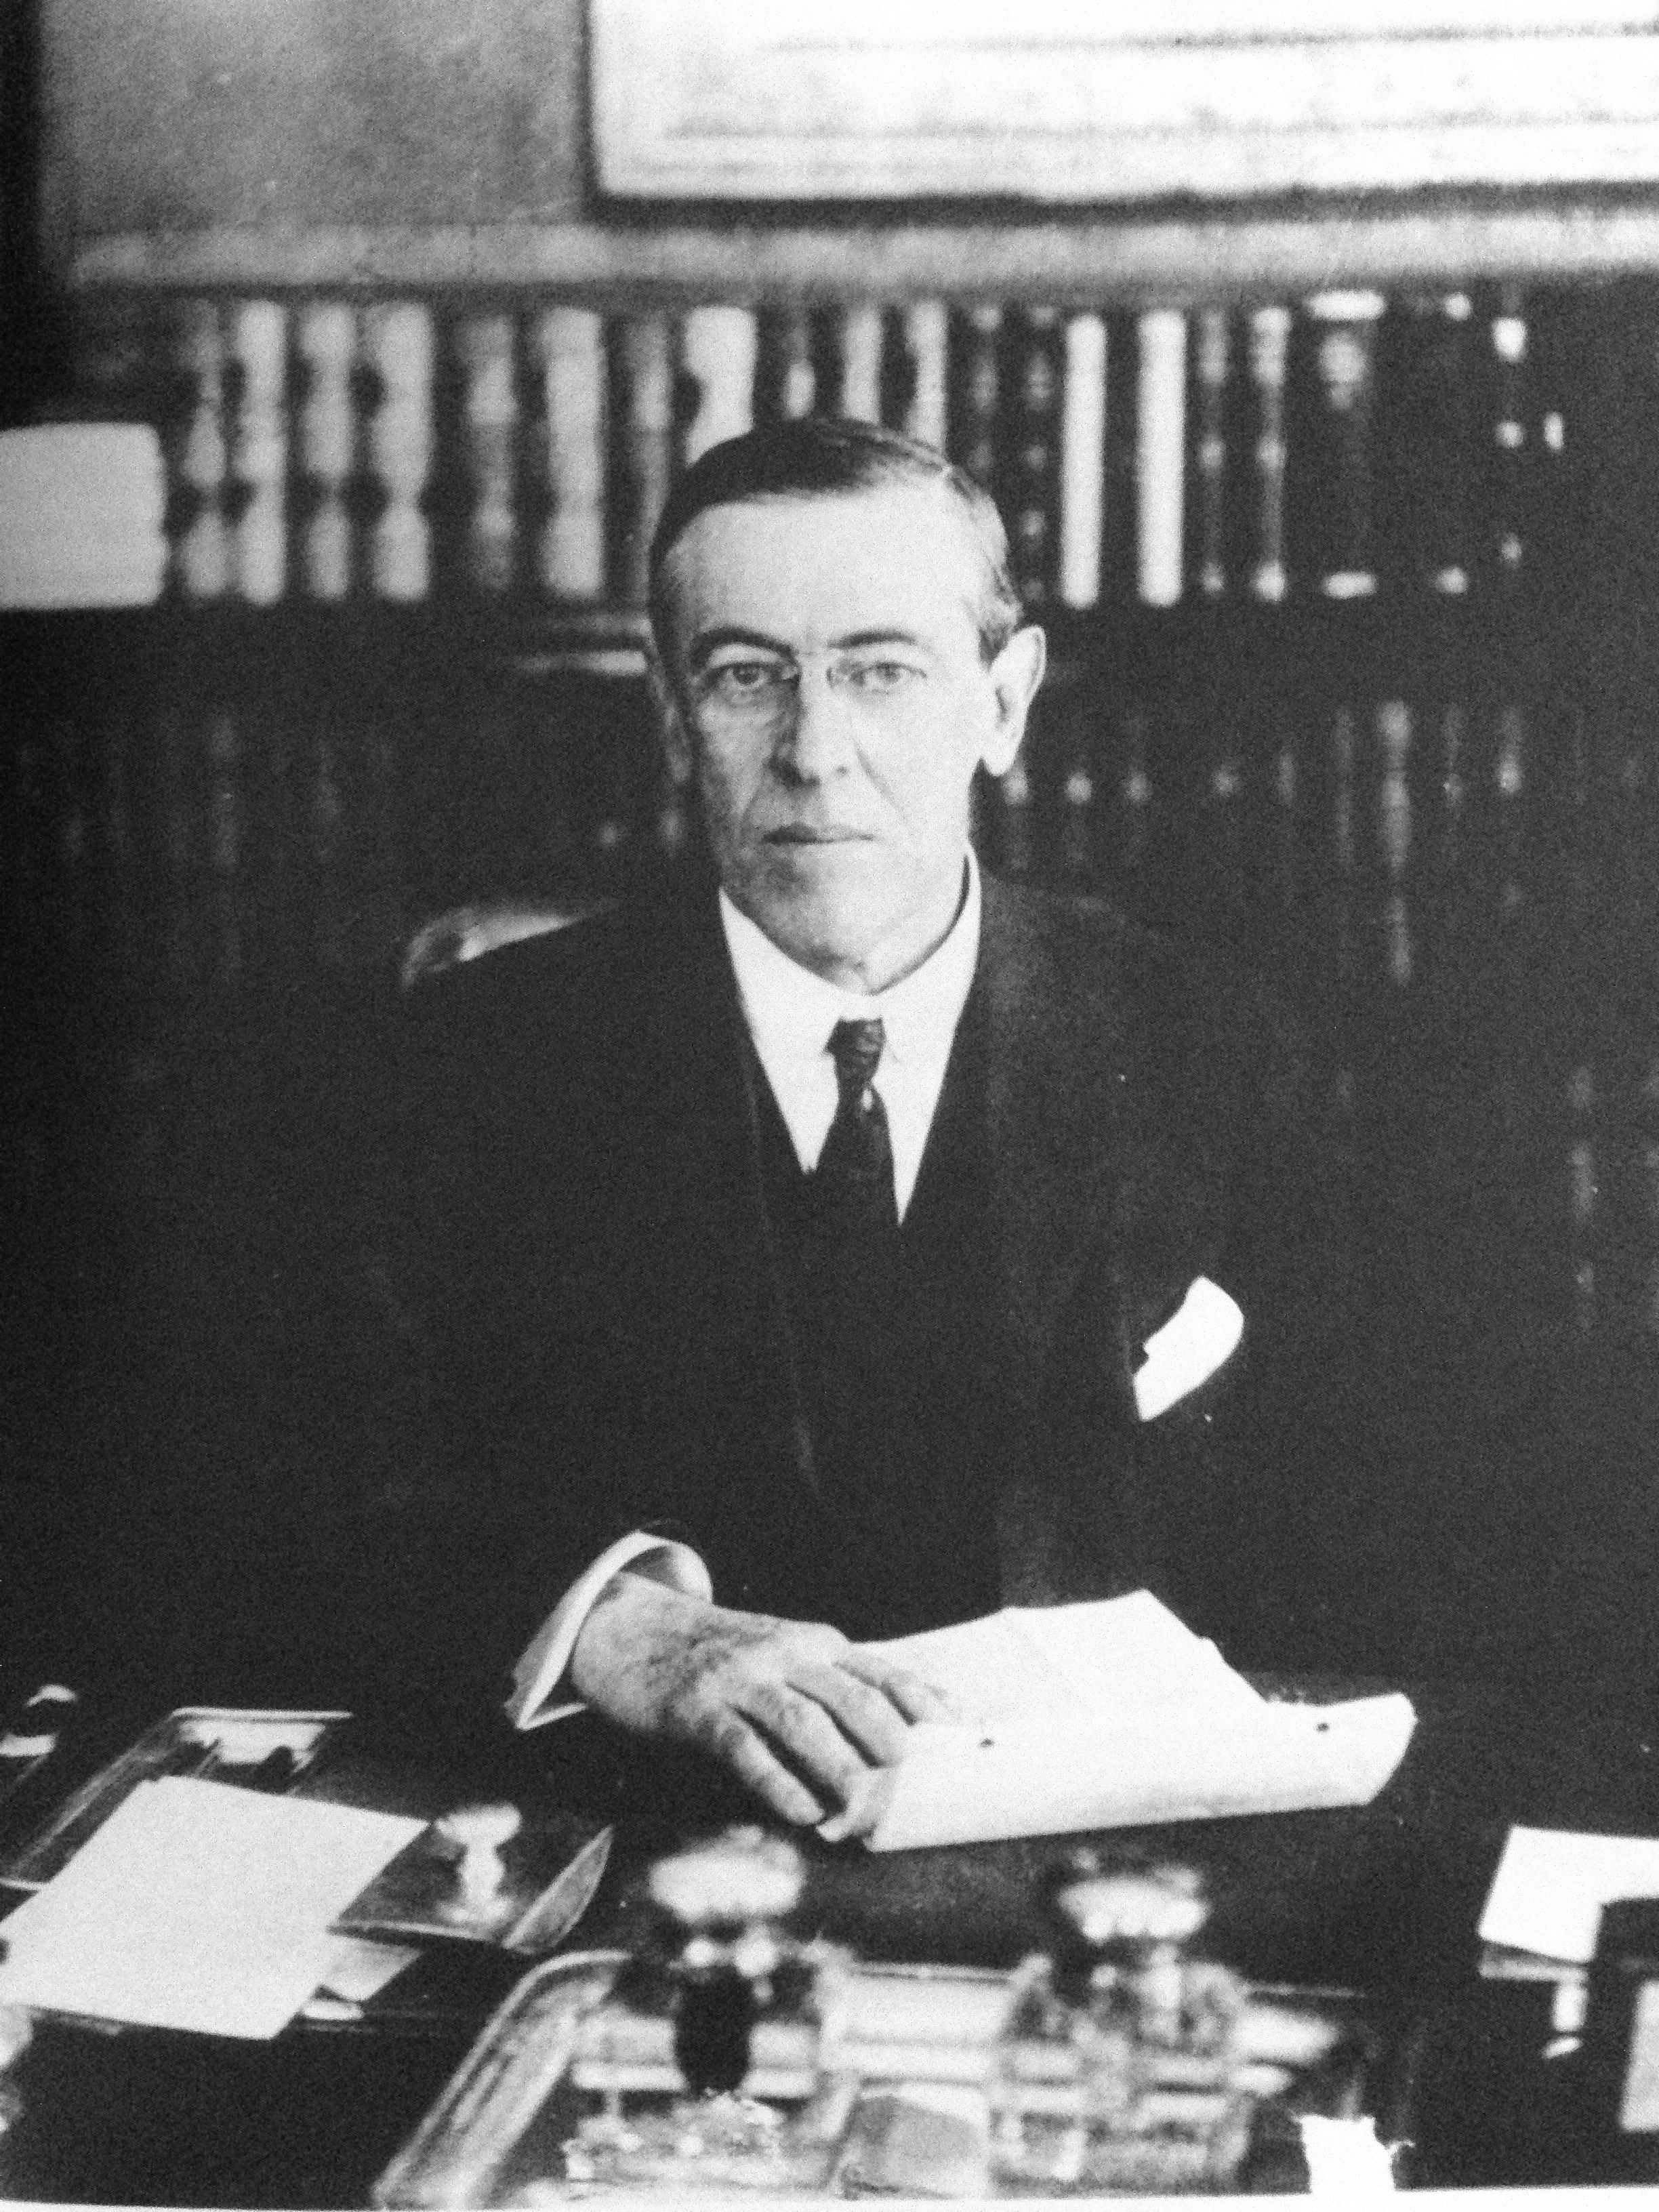 Woodrow Wilson, 28th U.S. President (1913-1921) segregated federal employees in Washington DC